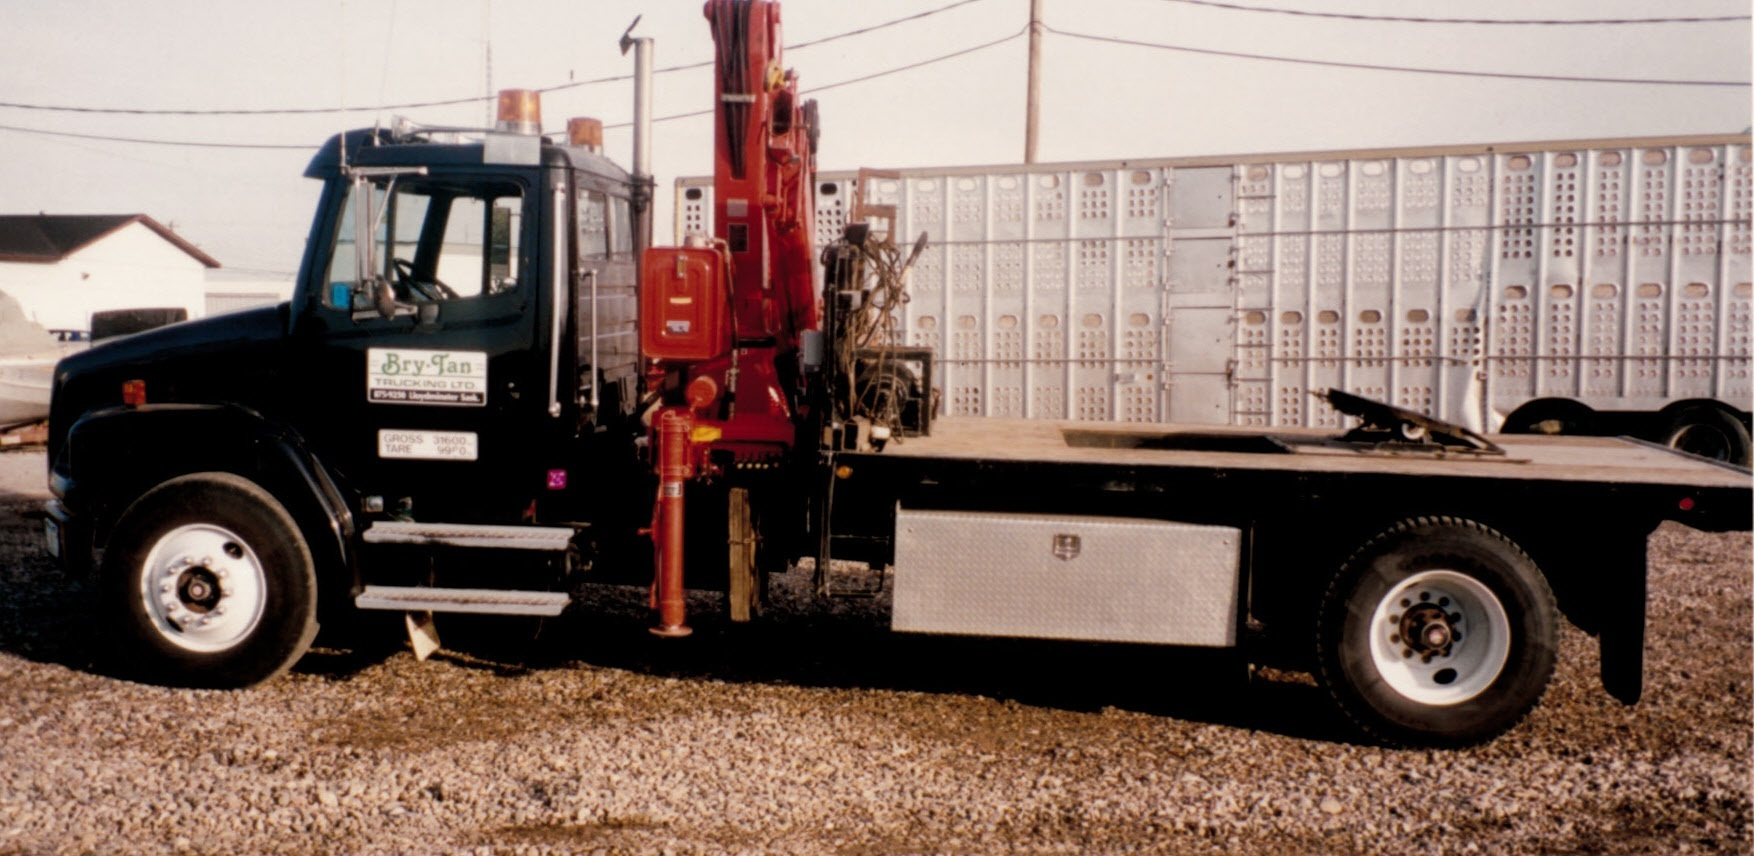 1994 - 7.5 TON HOT SHOT TRUCK WITH PICKER